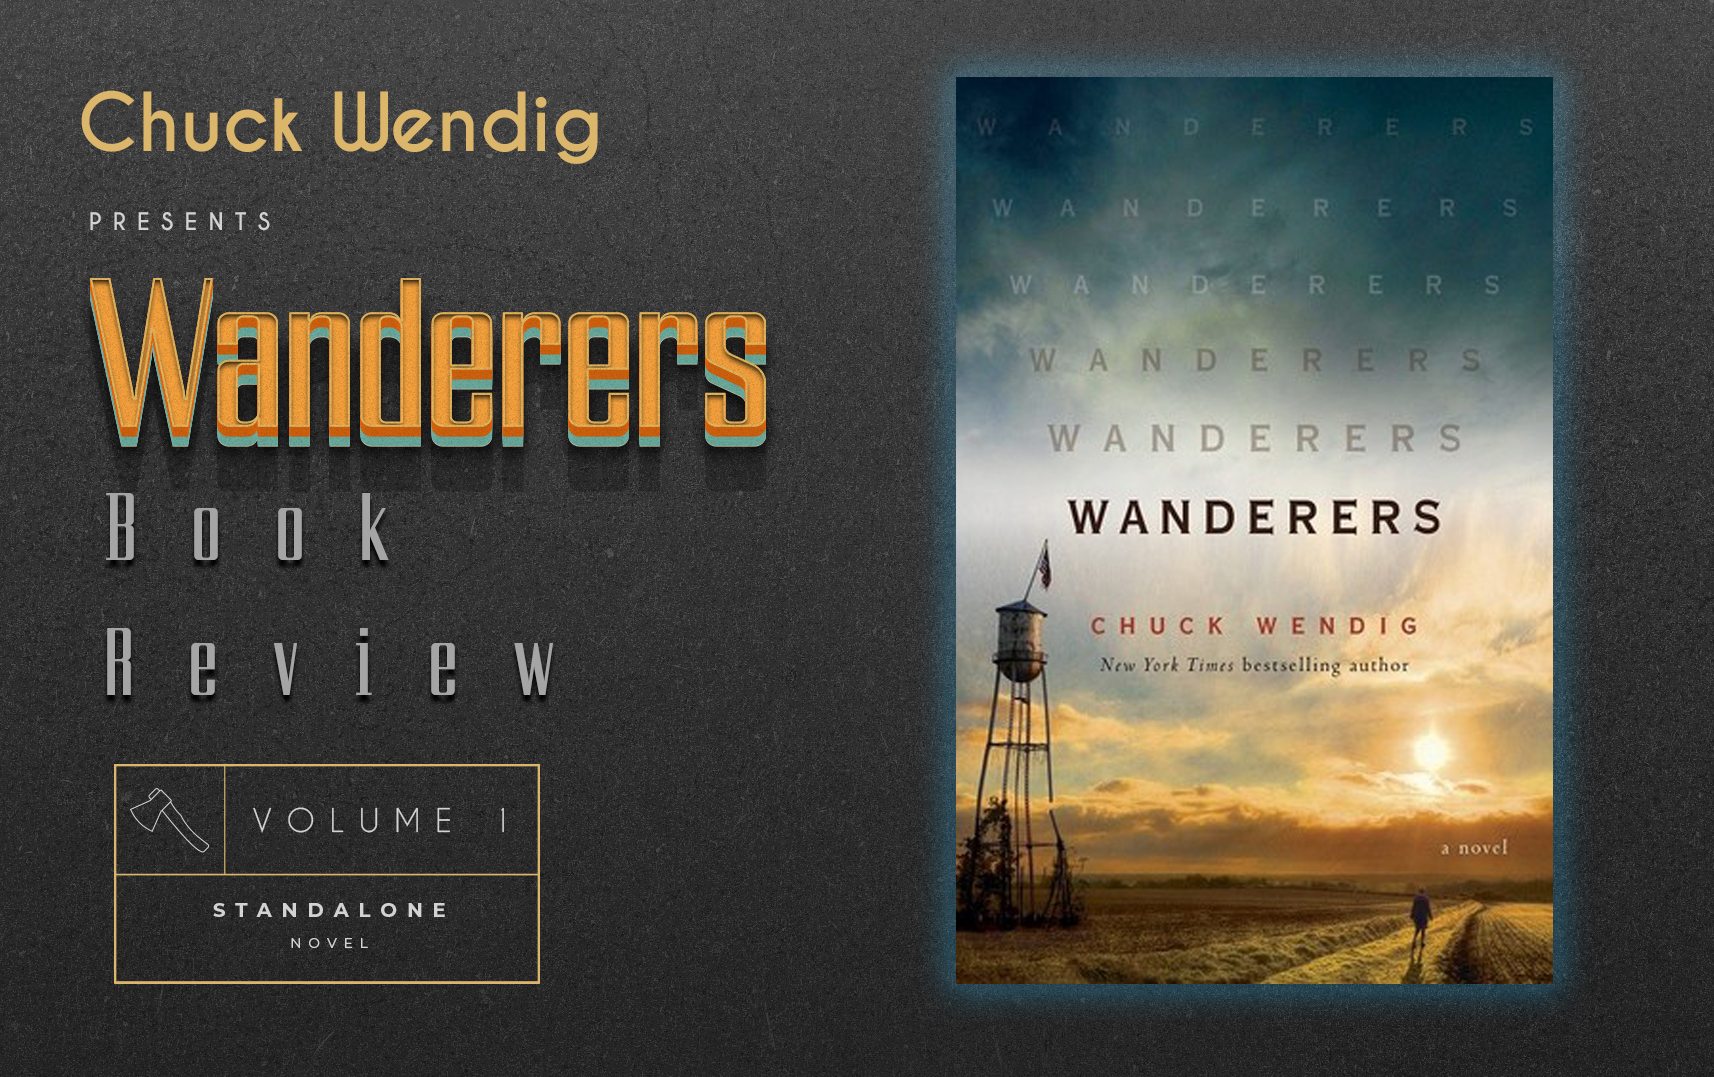 Review of Wanderers by Chuck Wendig